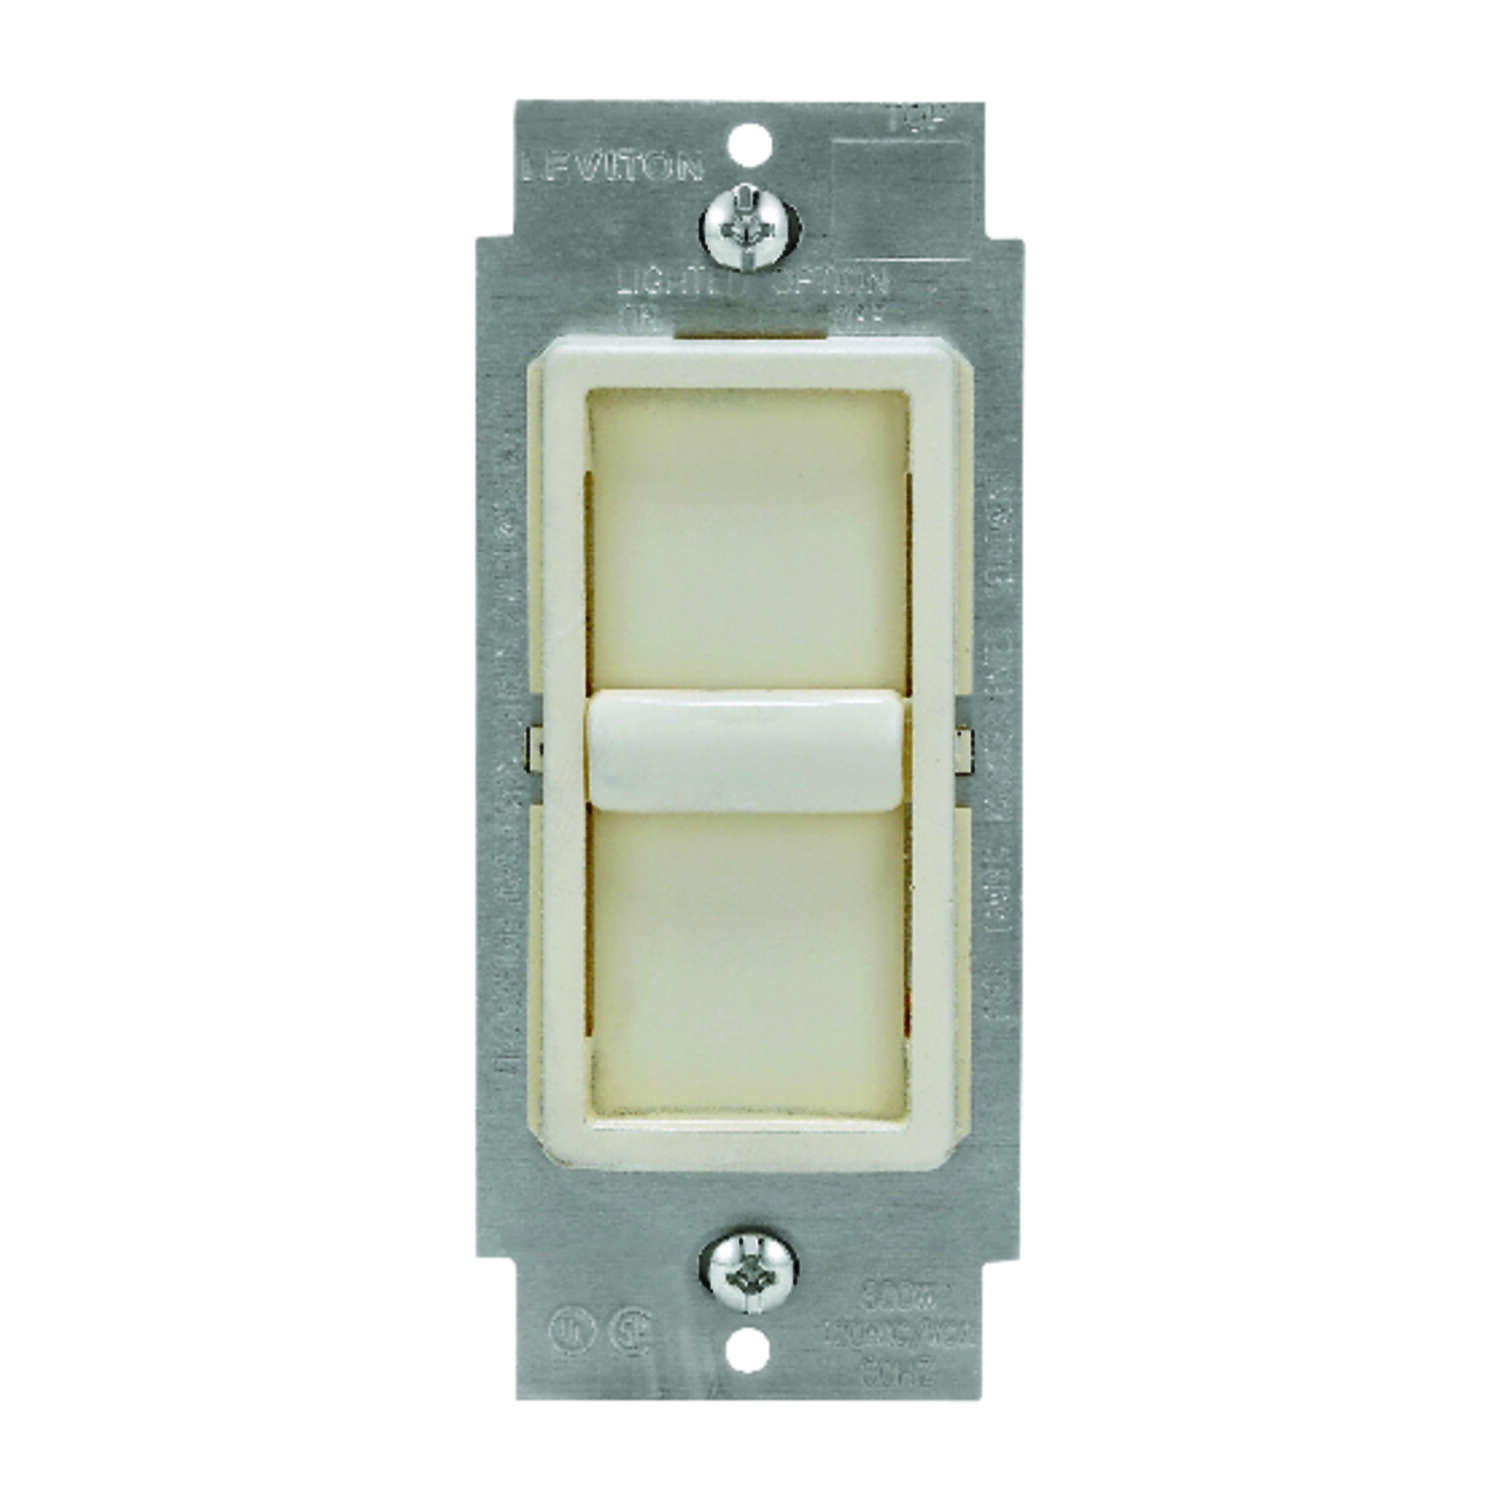 Leviton  Decora SureSlide  Light Almond  600 watt Slide  Dimmer Switch  1 pk